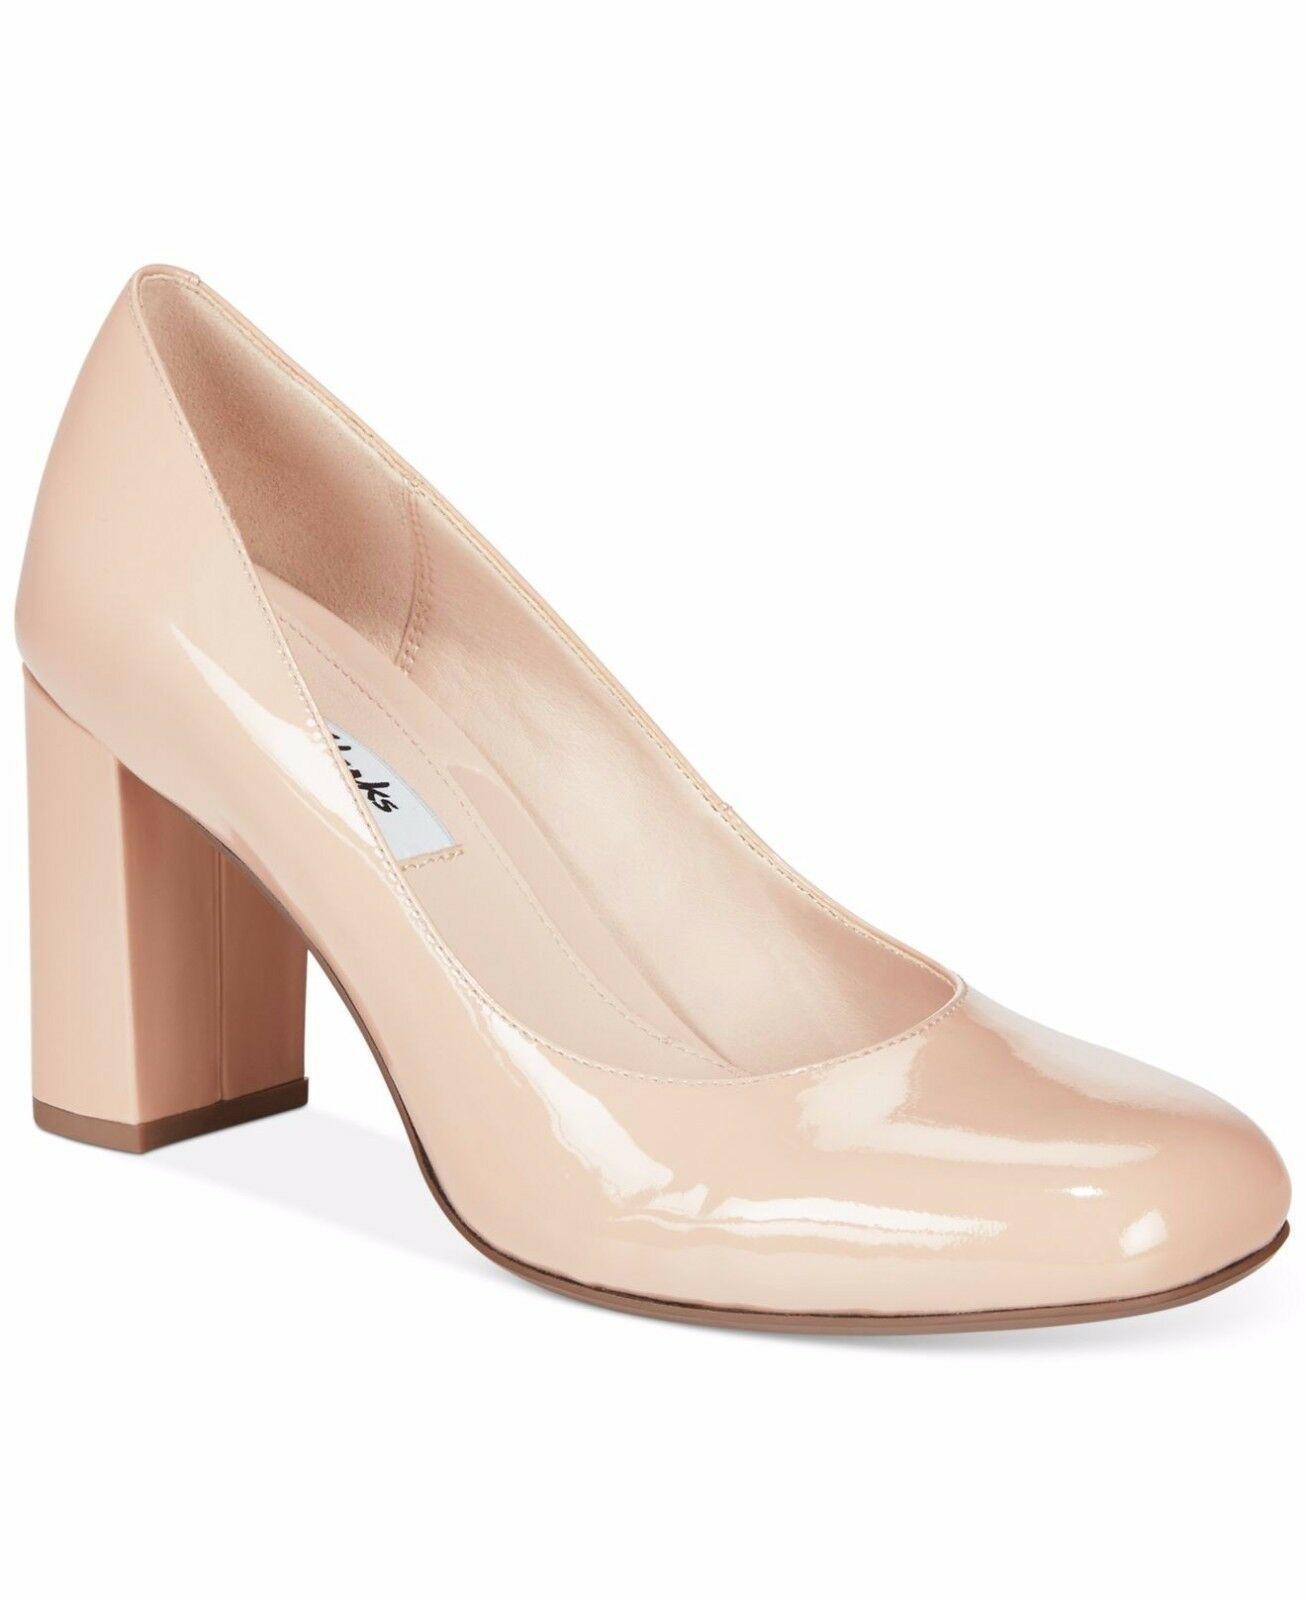 Clarks Nude Patent Leather shoes heels 7 41 D